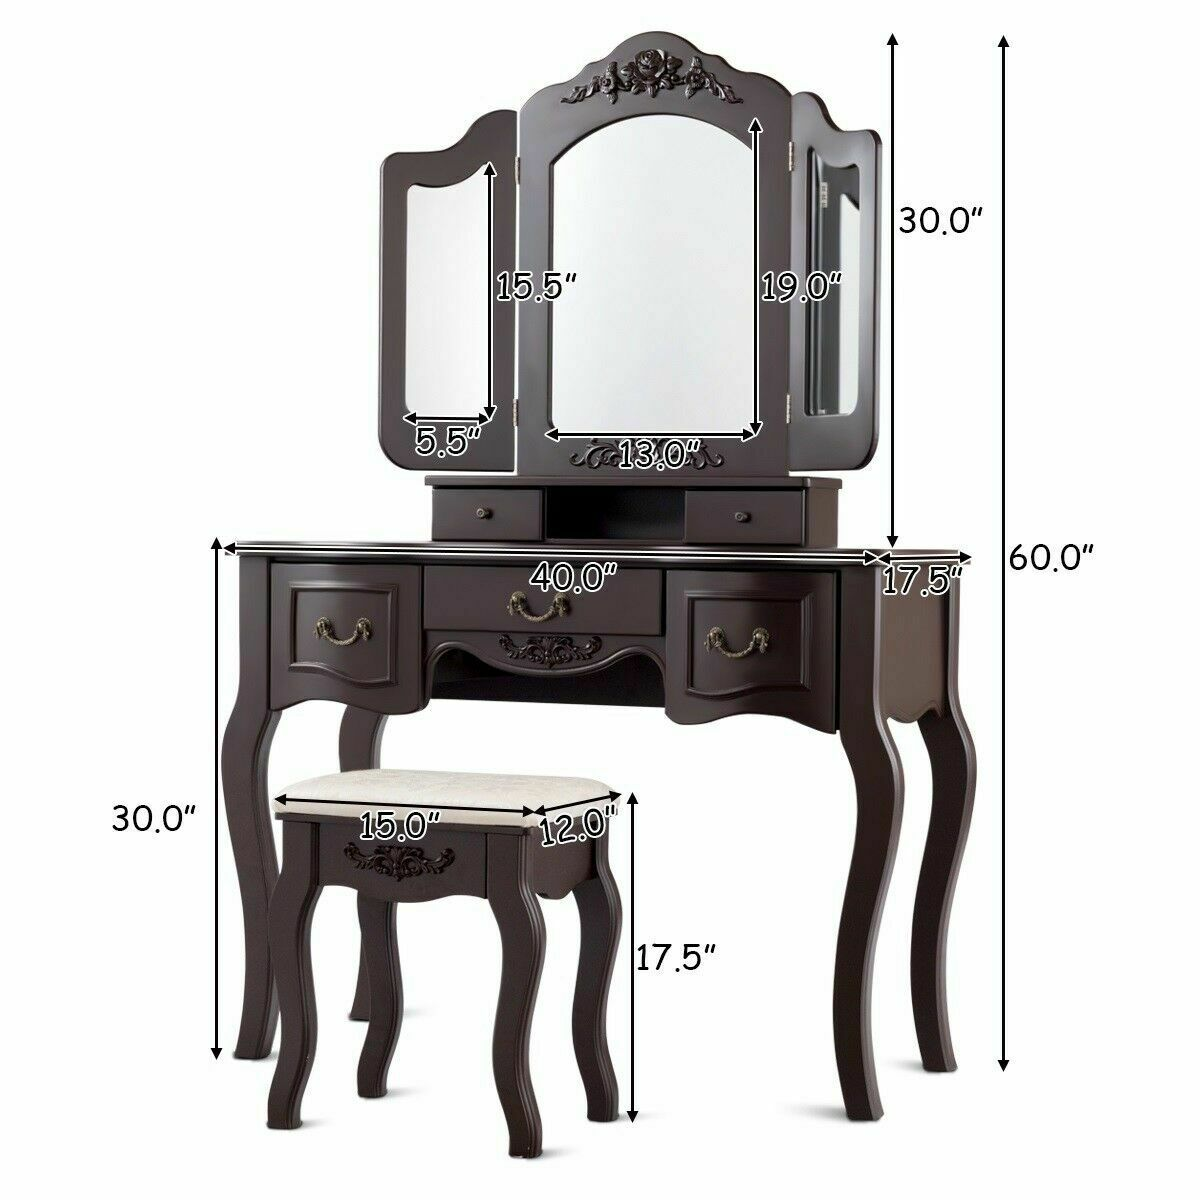 Costway Tri Folding Vintage Vanity Makeup Dressing Table Christmas Walmart Com Walmart Com